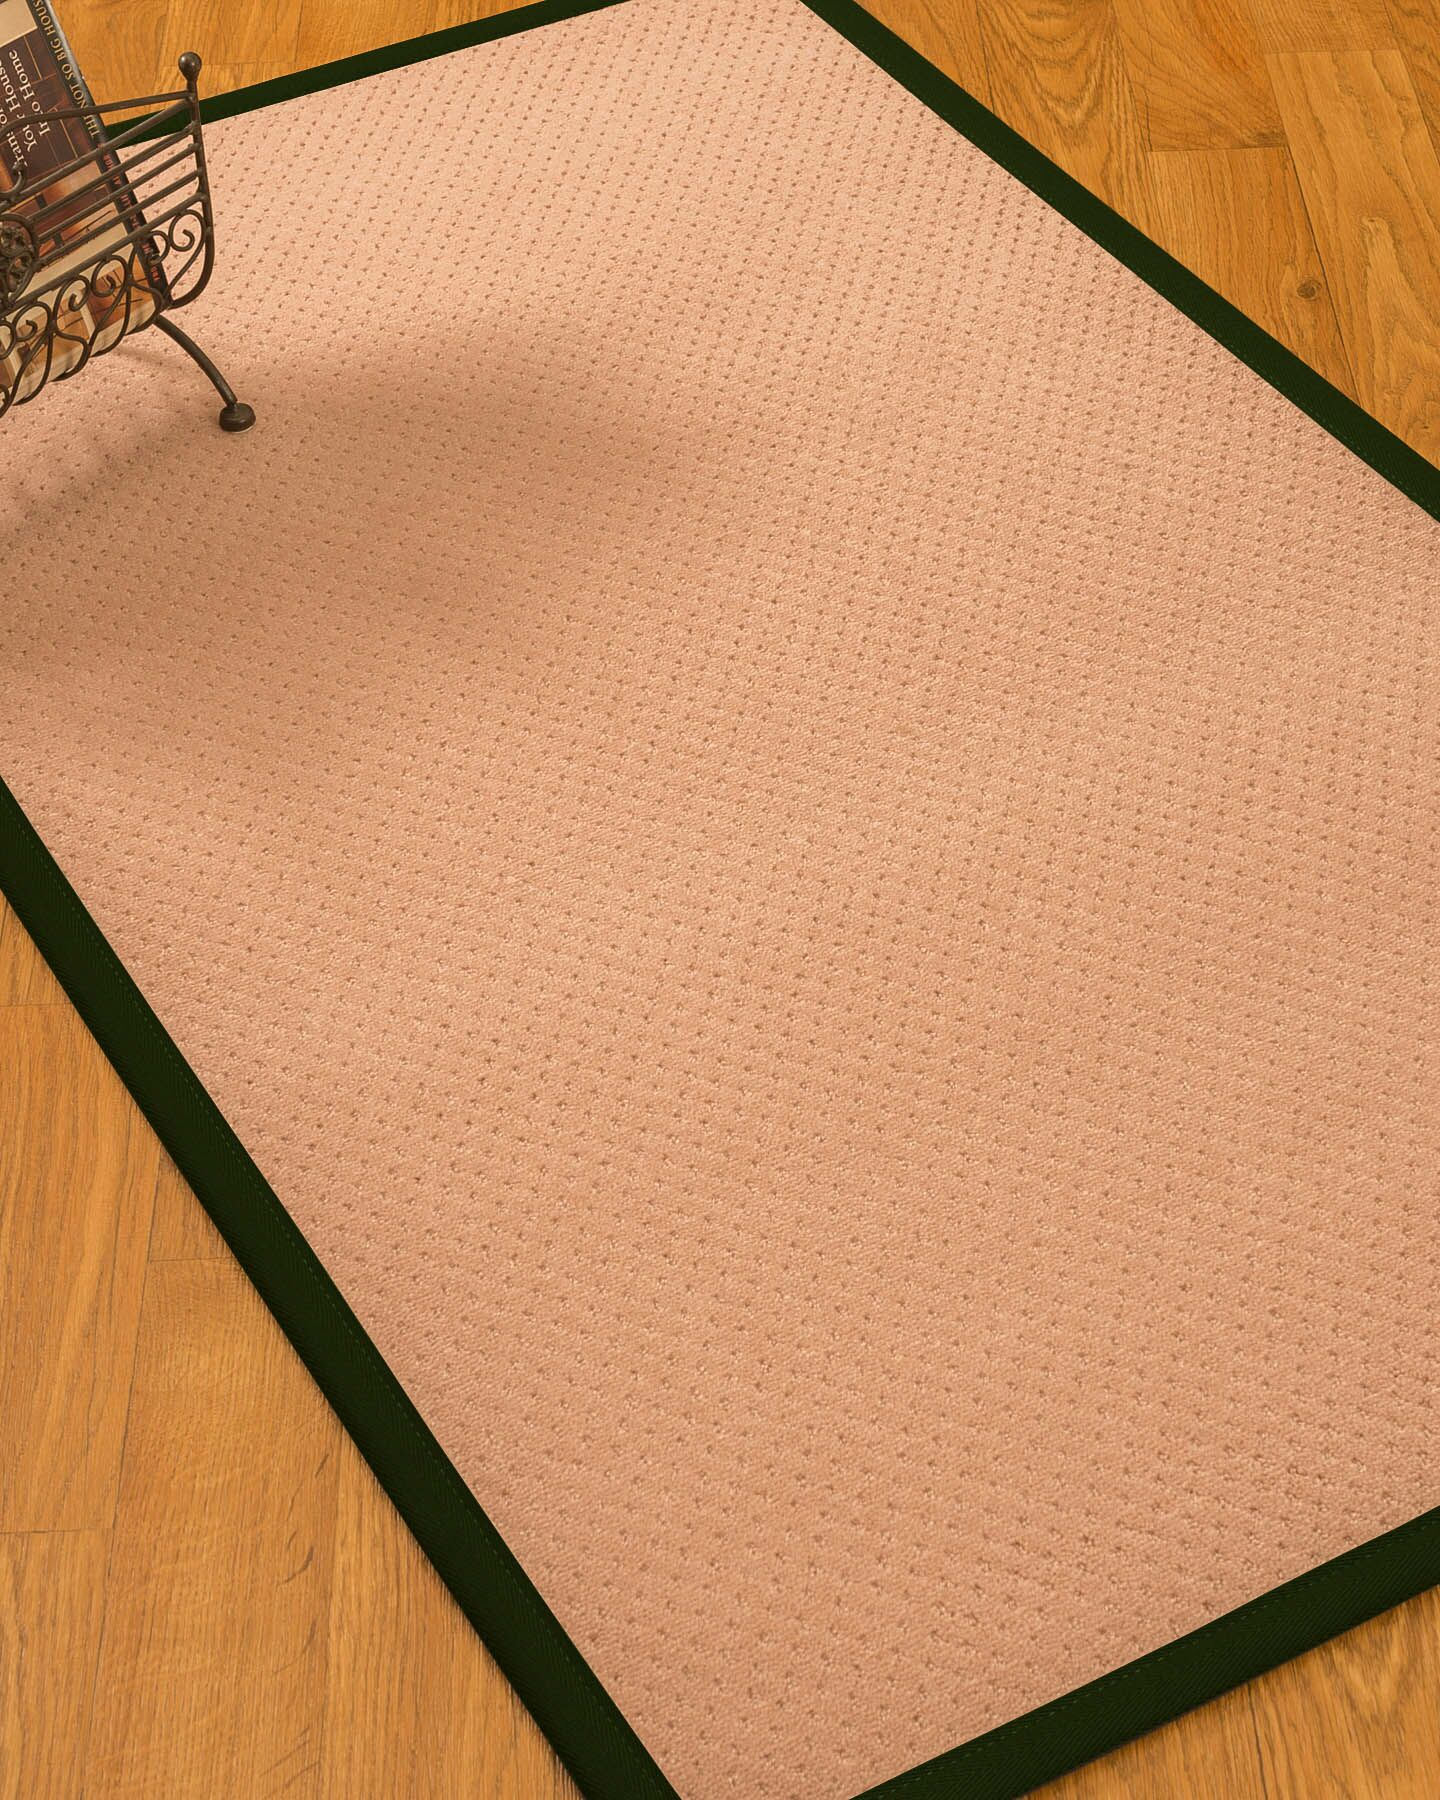 Farnham Border Hand-Woven Wool Pink/Moss Area Rug Rug Size: Rectangle 4' x 6', Rug Pad Included: Yes